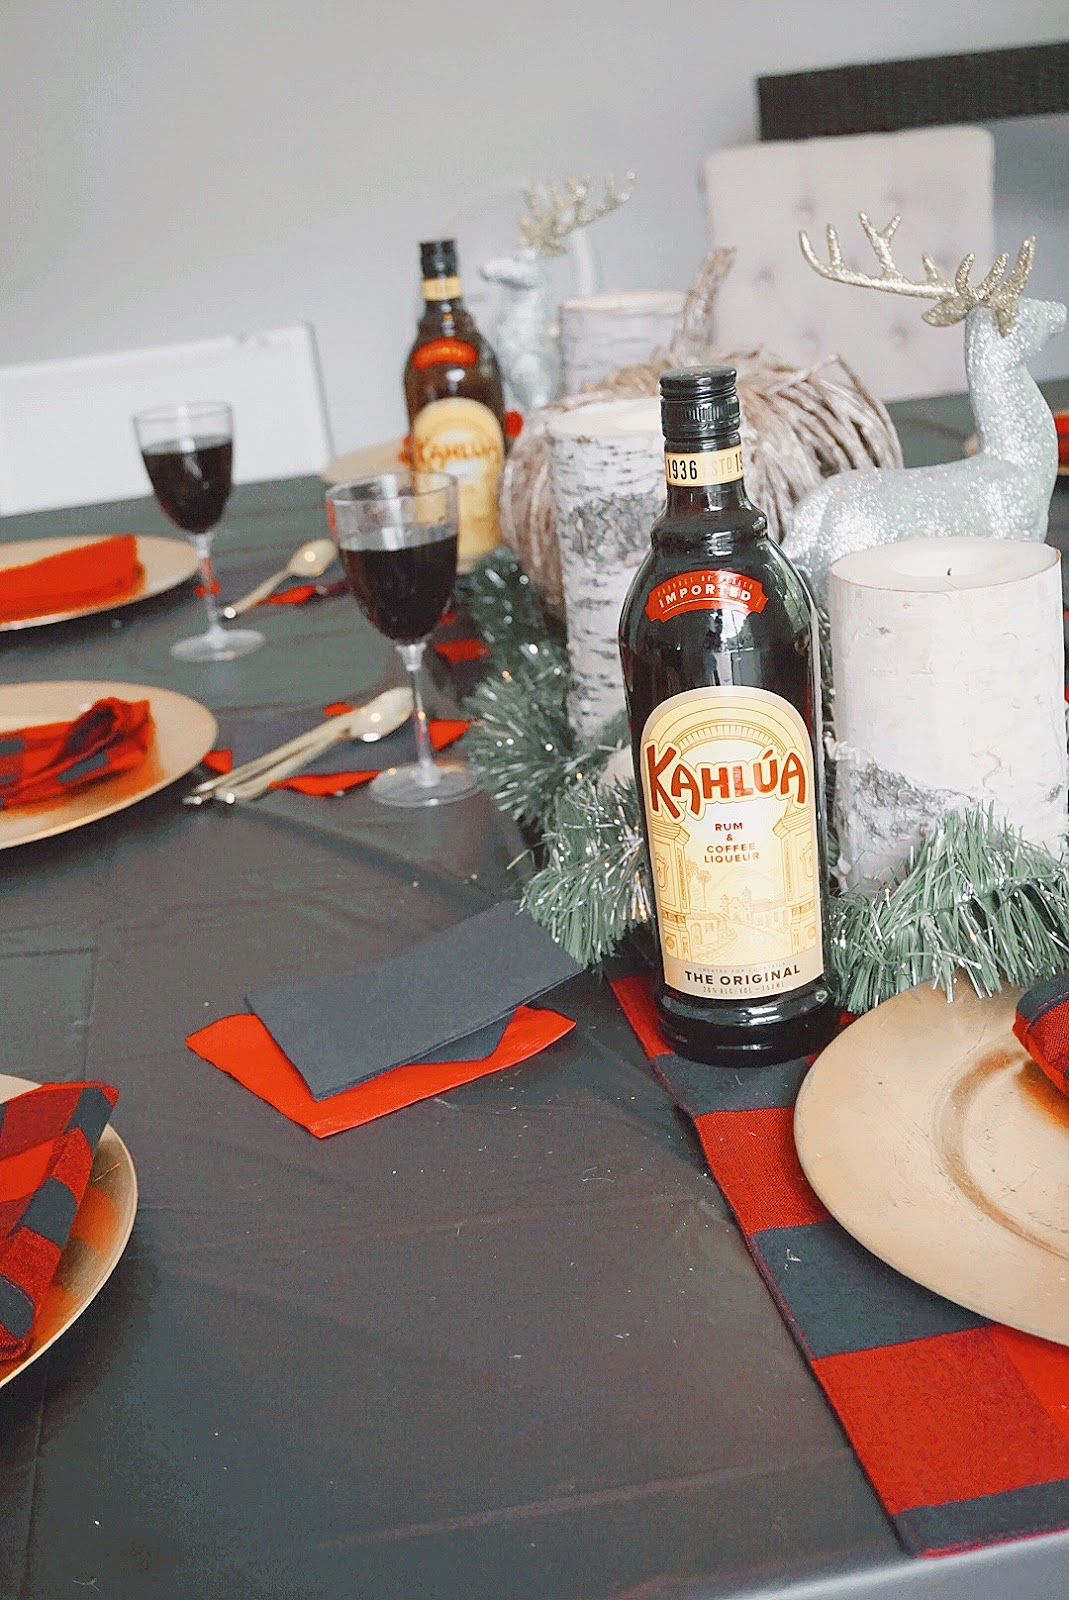 Kahlua-Espresso-Martini-Cocktail-Recipe-Holiday-Party